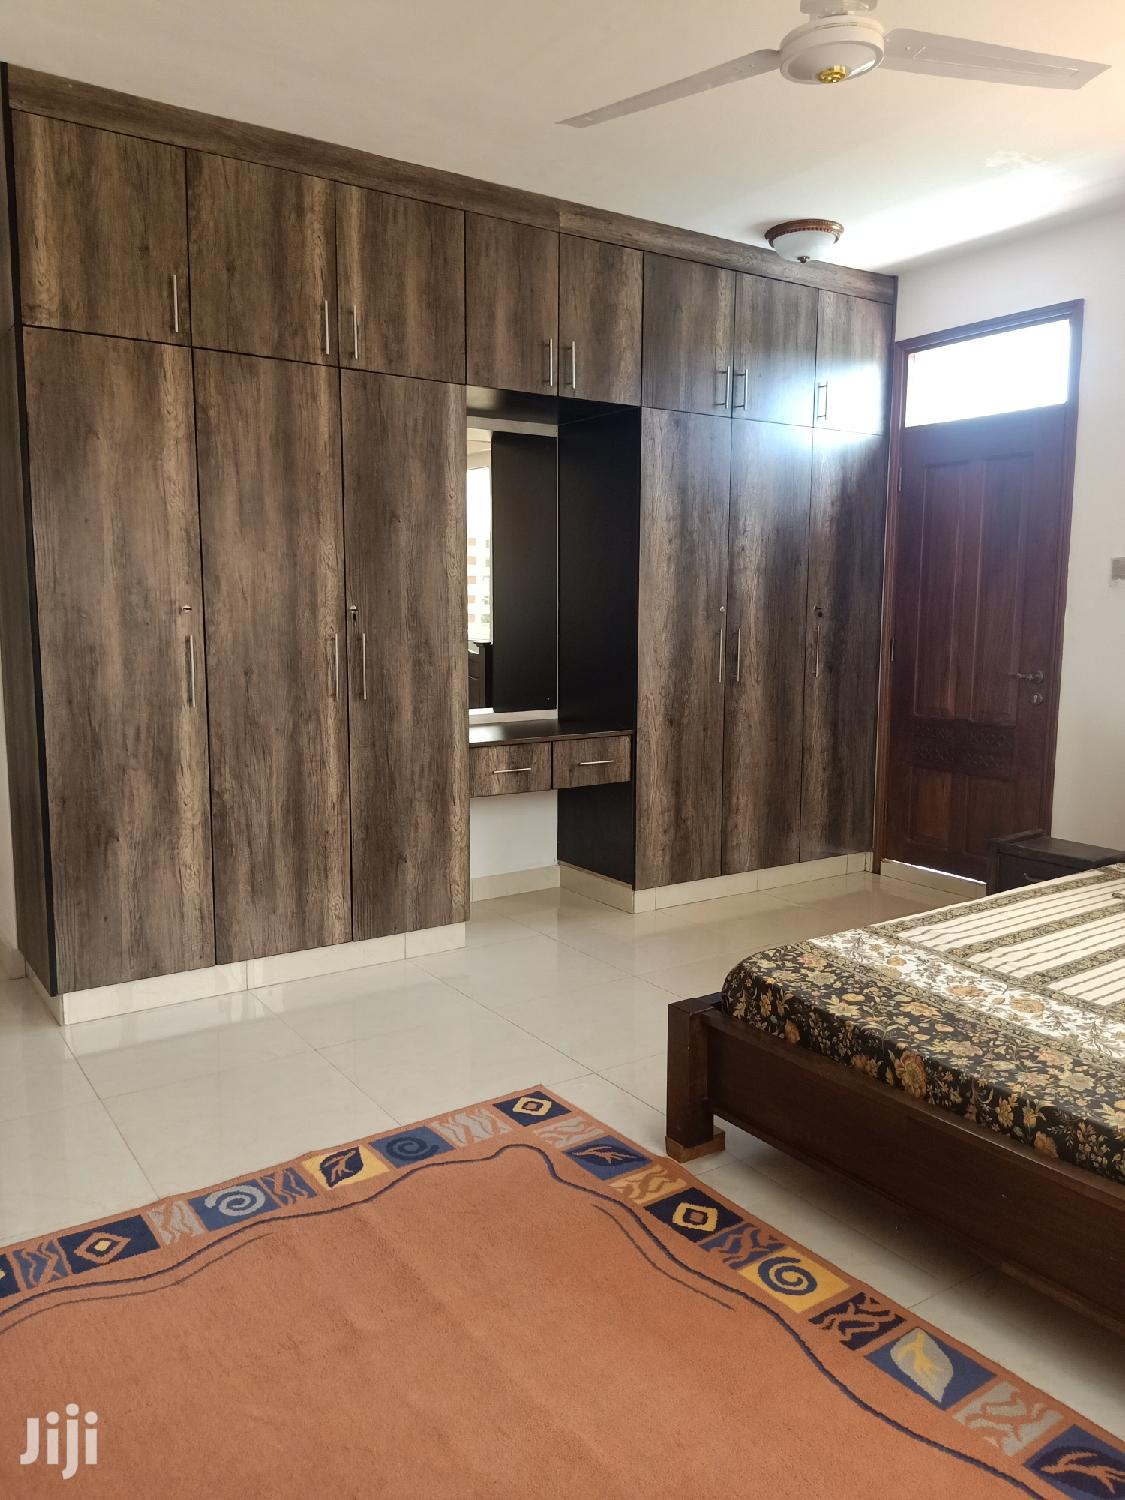 Luxy Town House On Sale At Utange Mombasa | Houses & Apartments For Sale for sale in Kisauni, Mombasa, Kenya